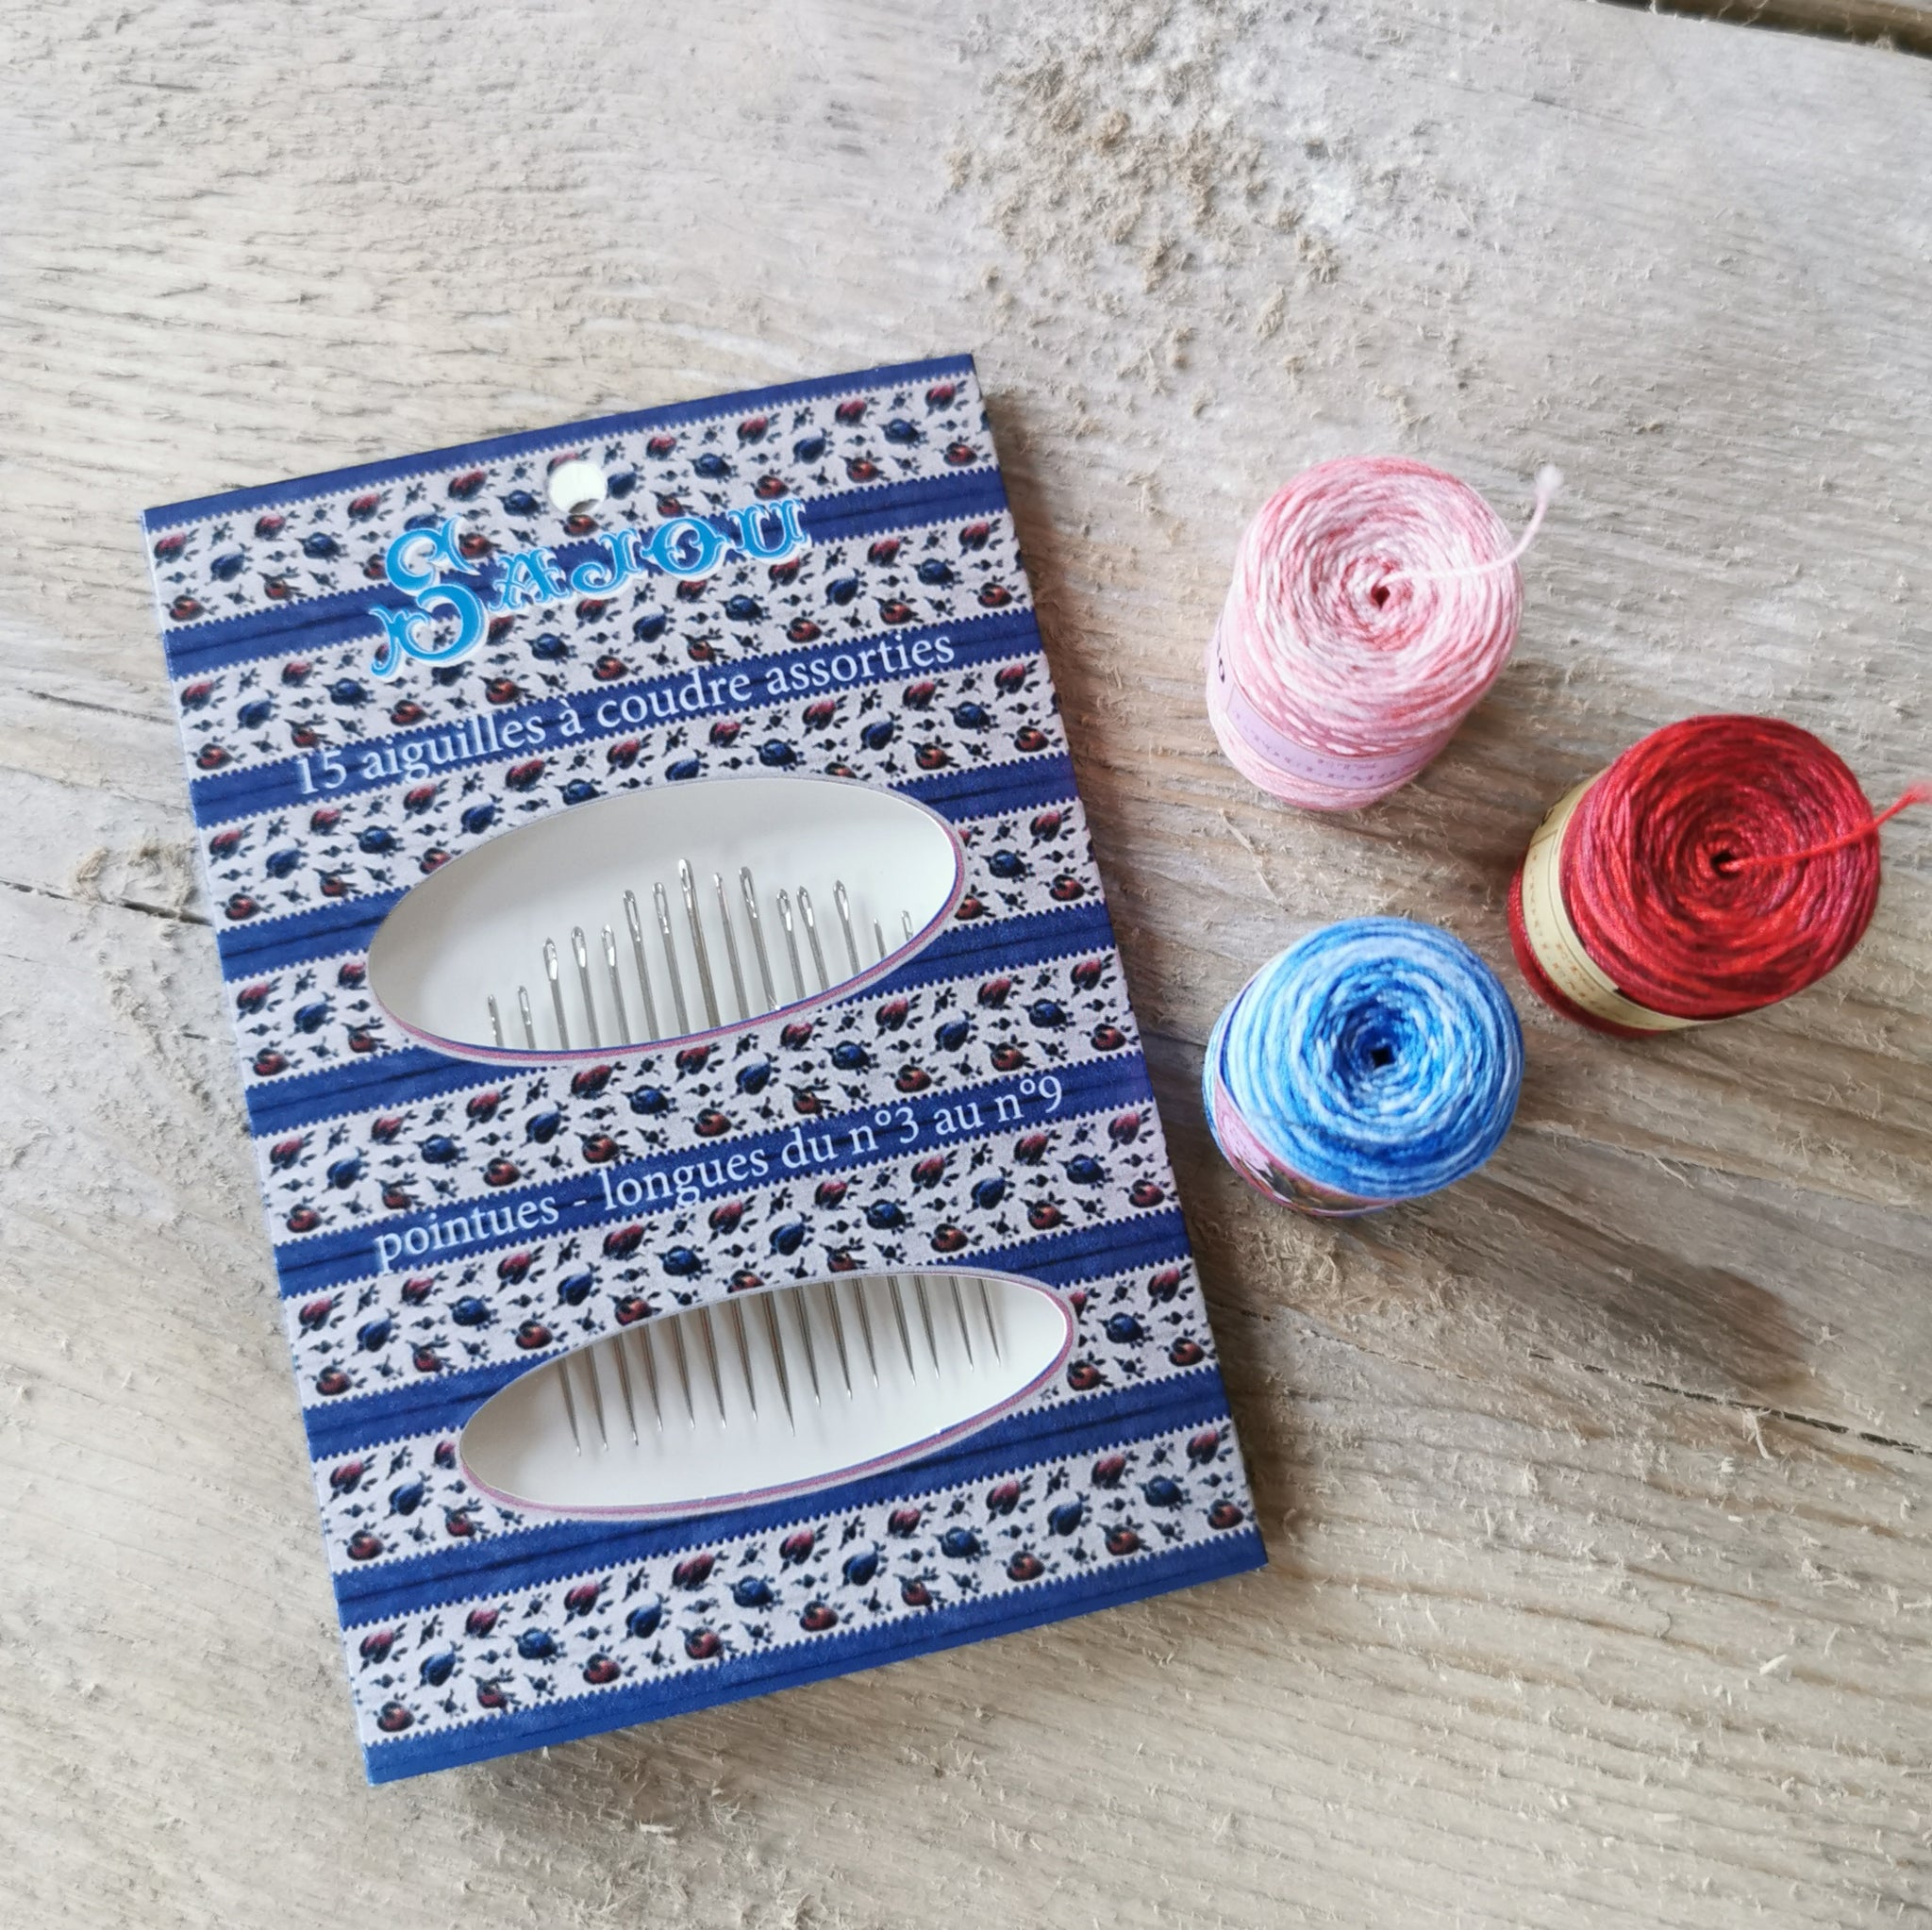 Sajou Sewing Needles - blue floral pack